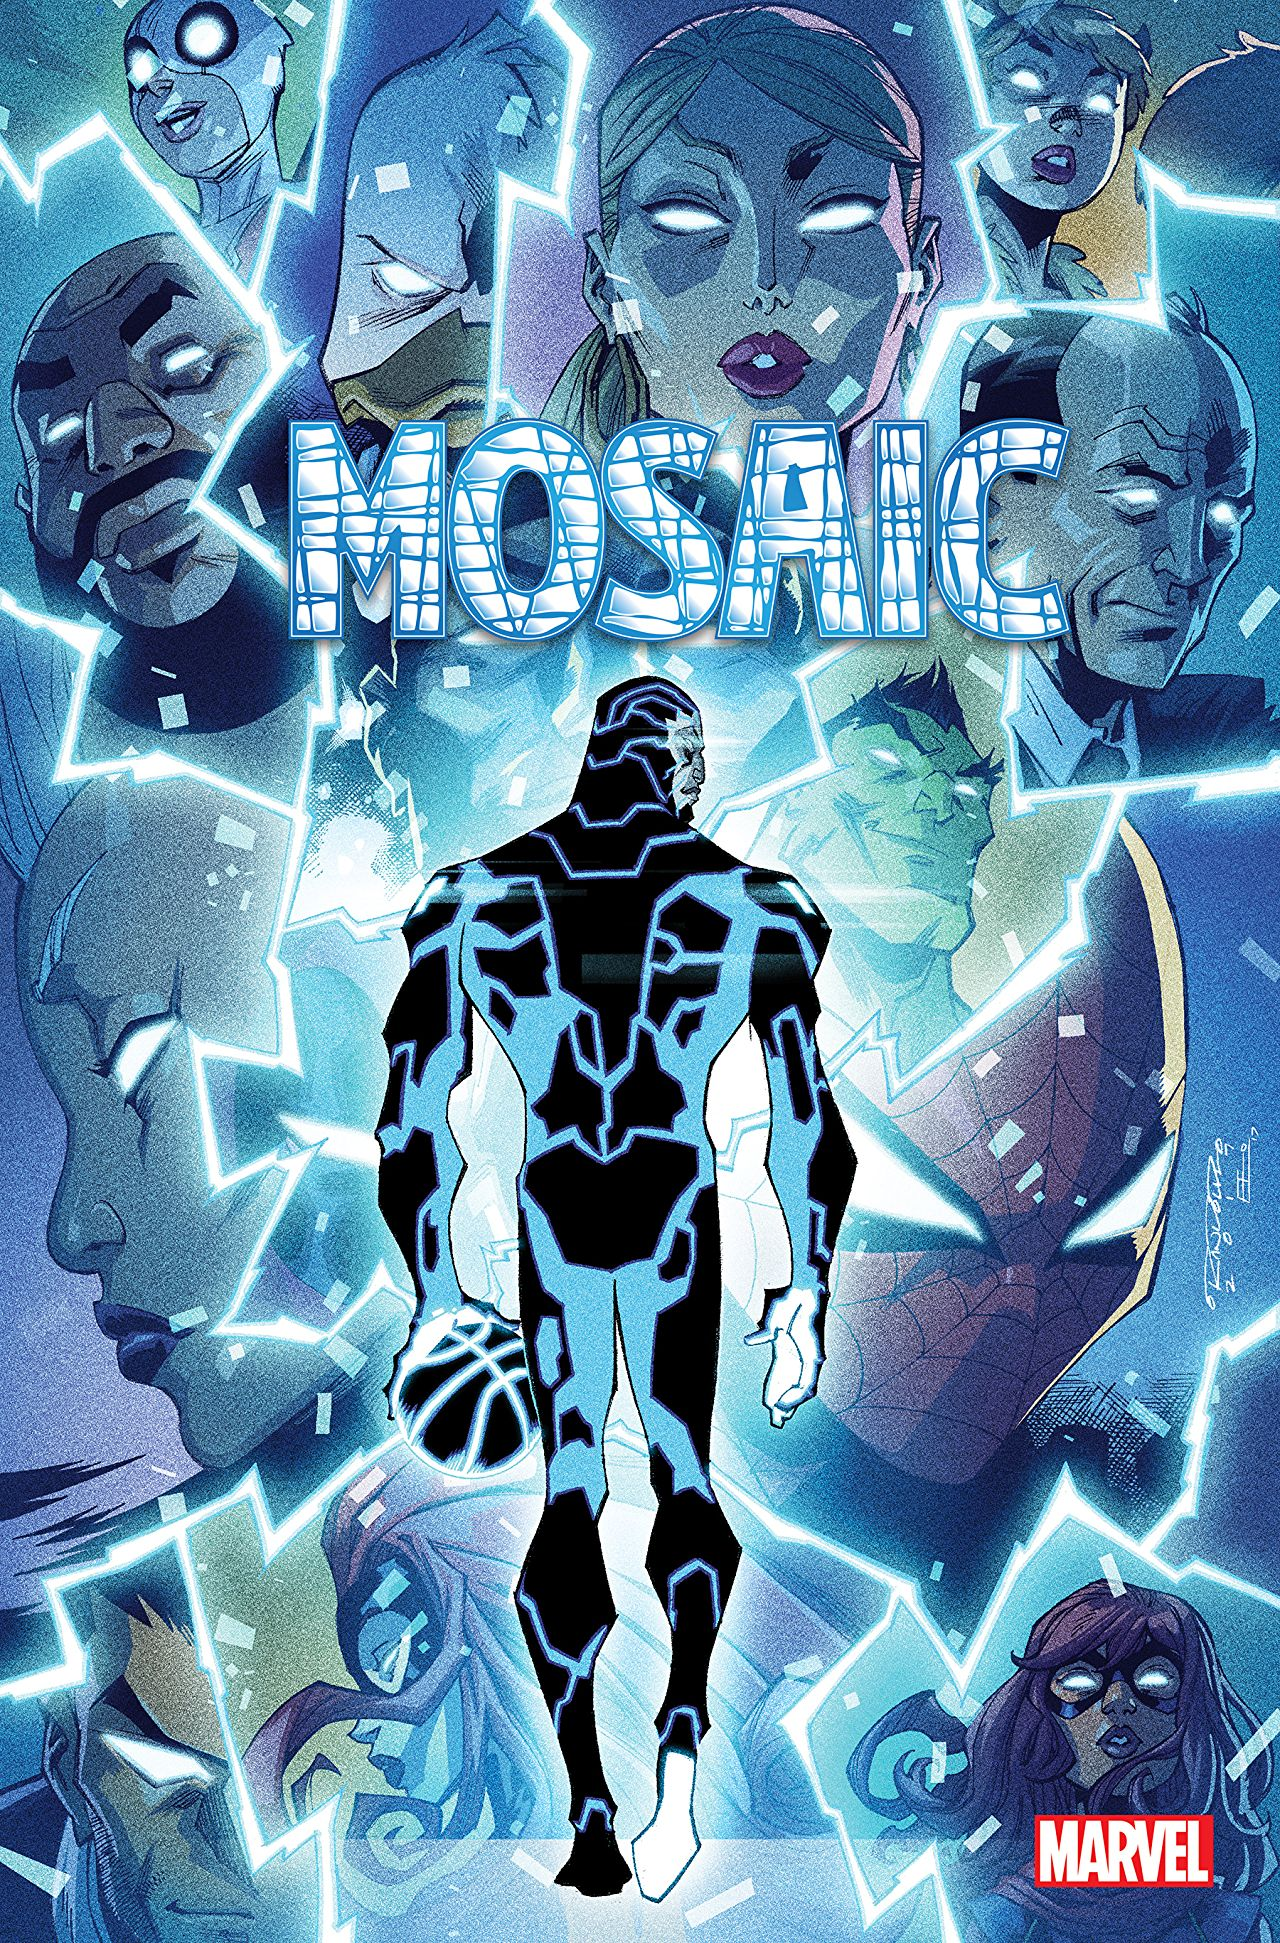 'Mosaic Vol. 2: Down Below' review: A relatable character in a book that ended too soon